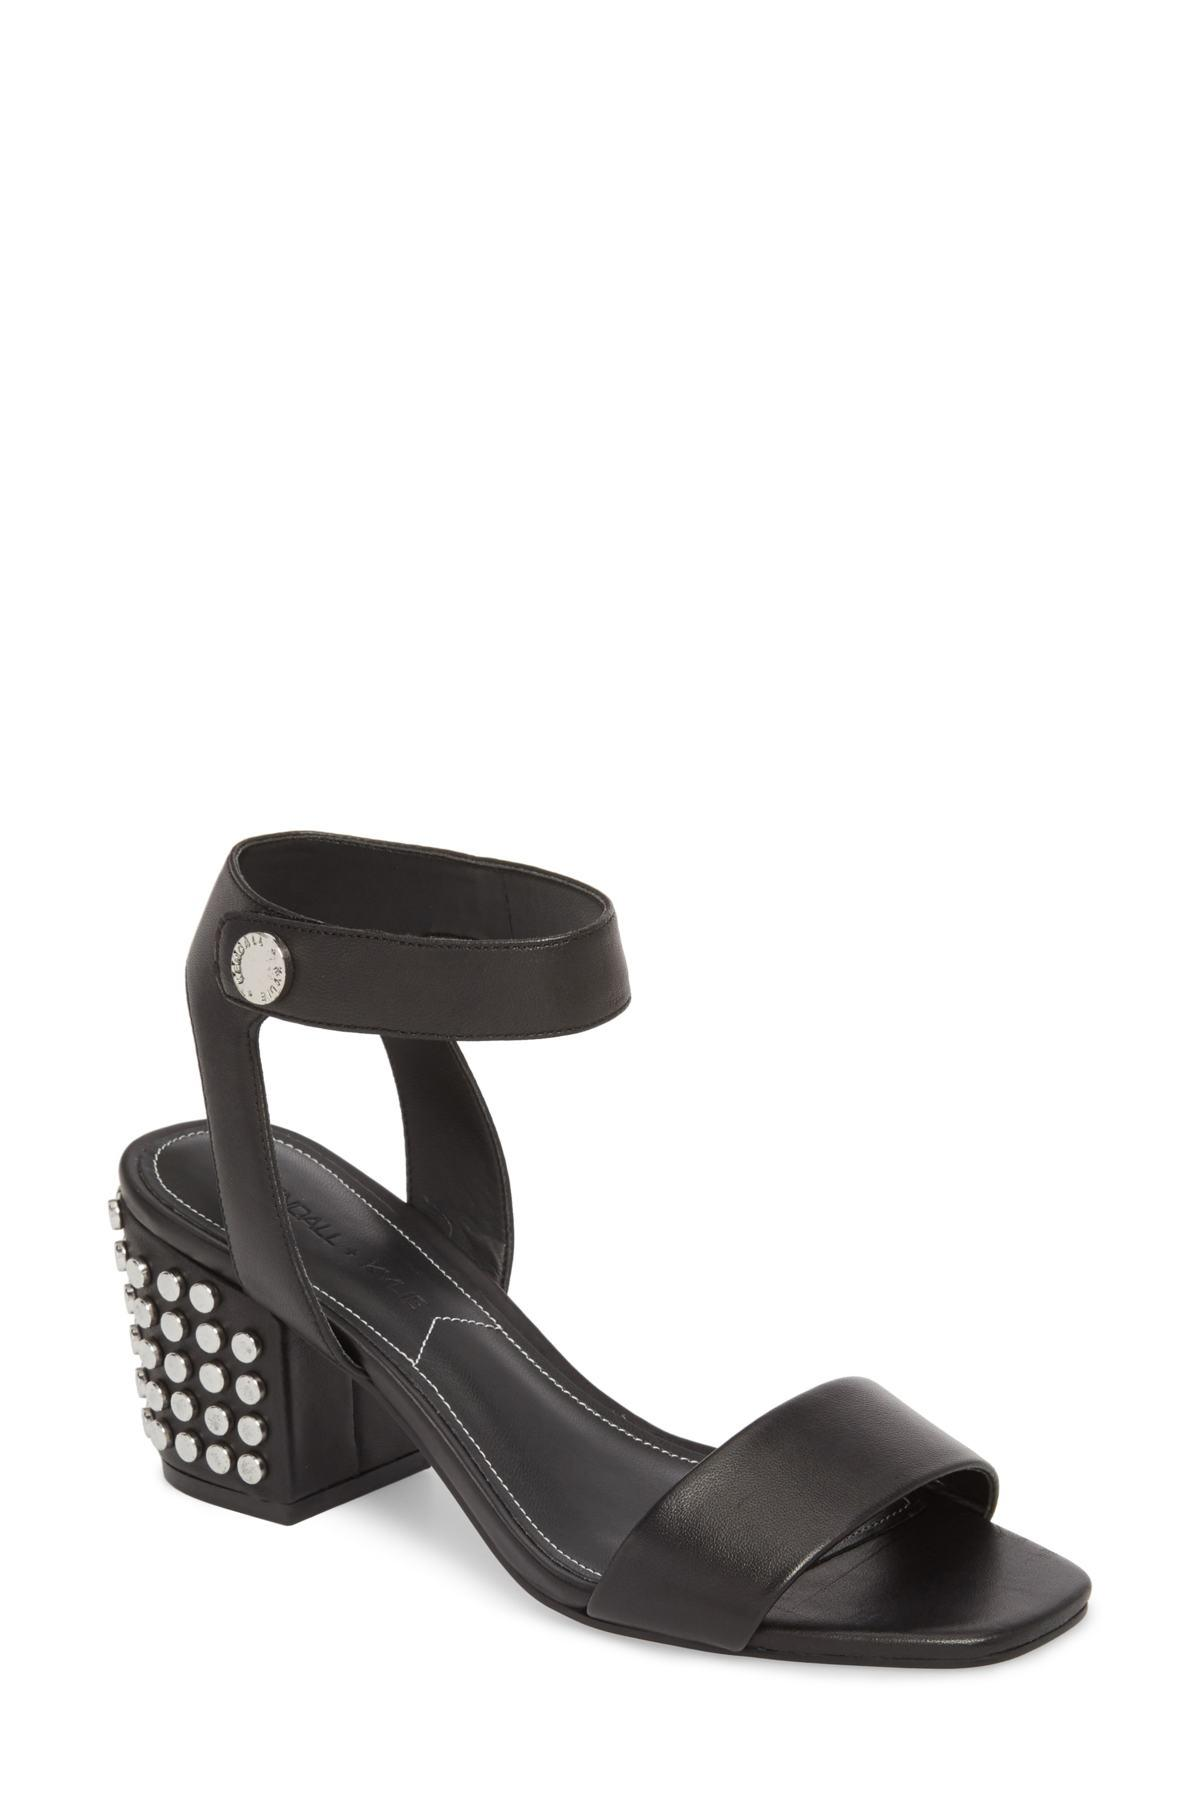 d2c0b7f91f03 Lyst - Kendall + Kylie Sophie Heeled Sandal in Black - Save 60.8%